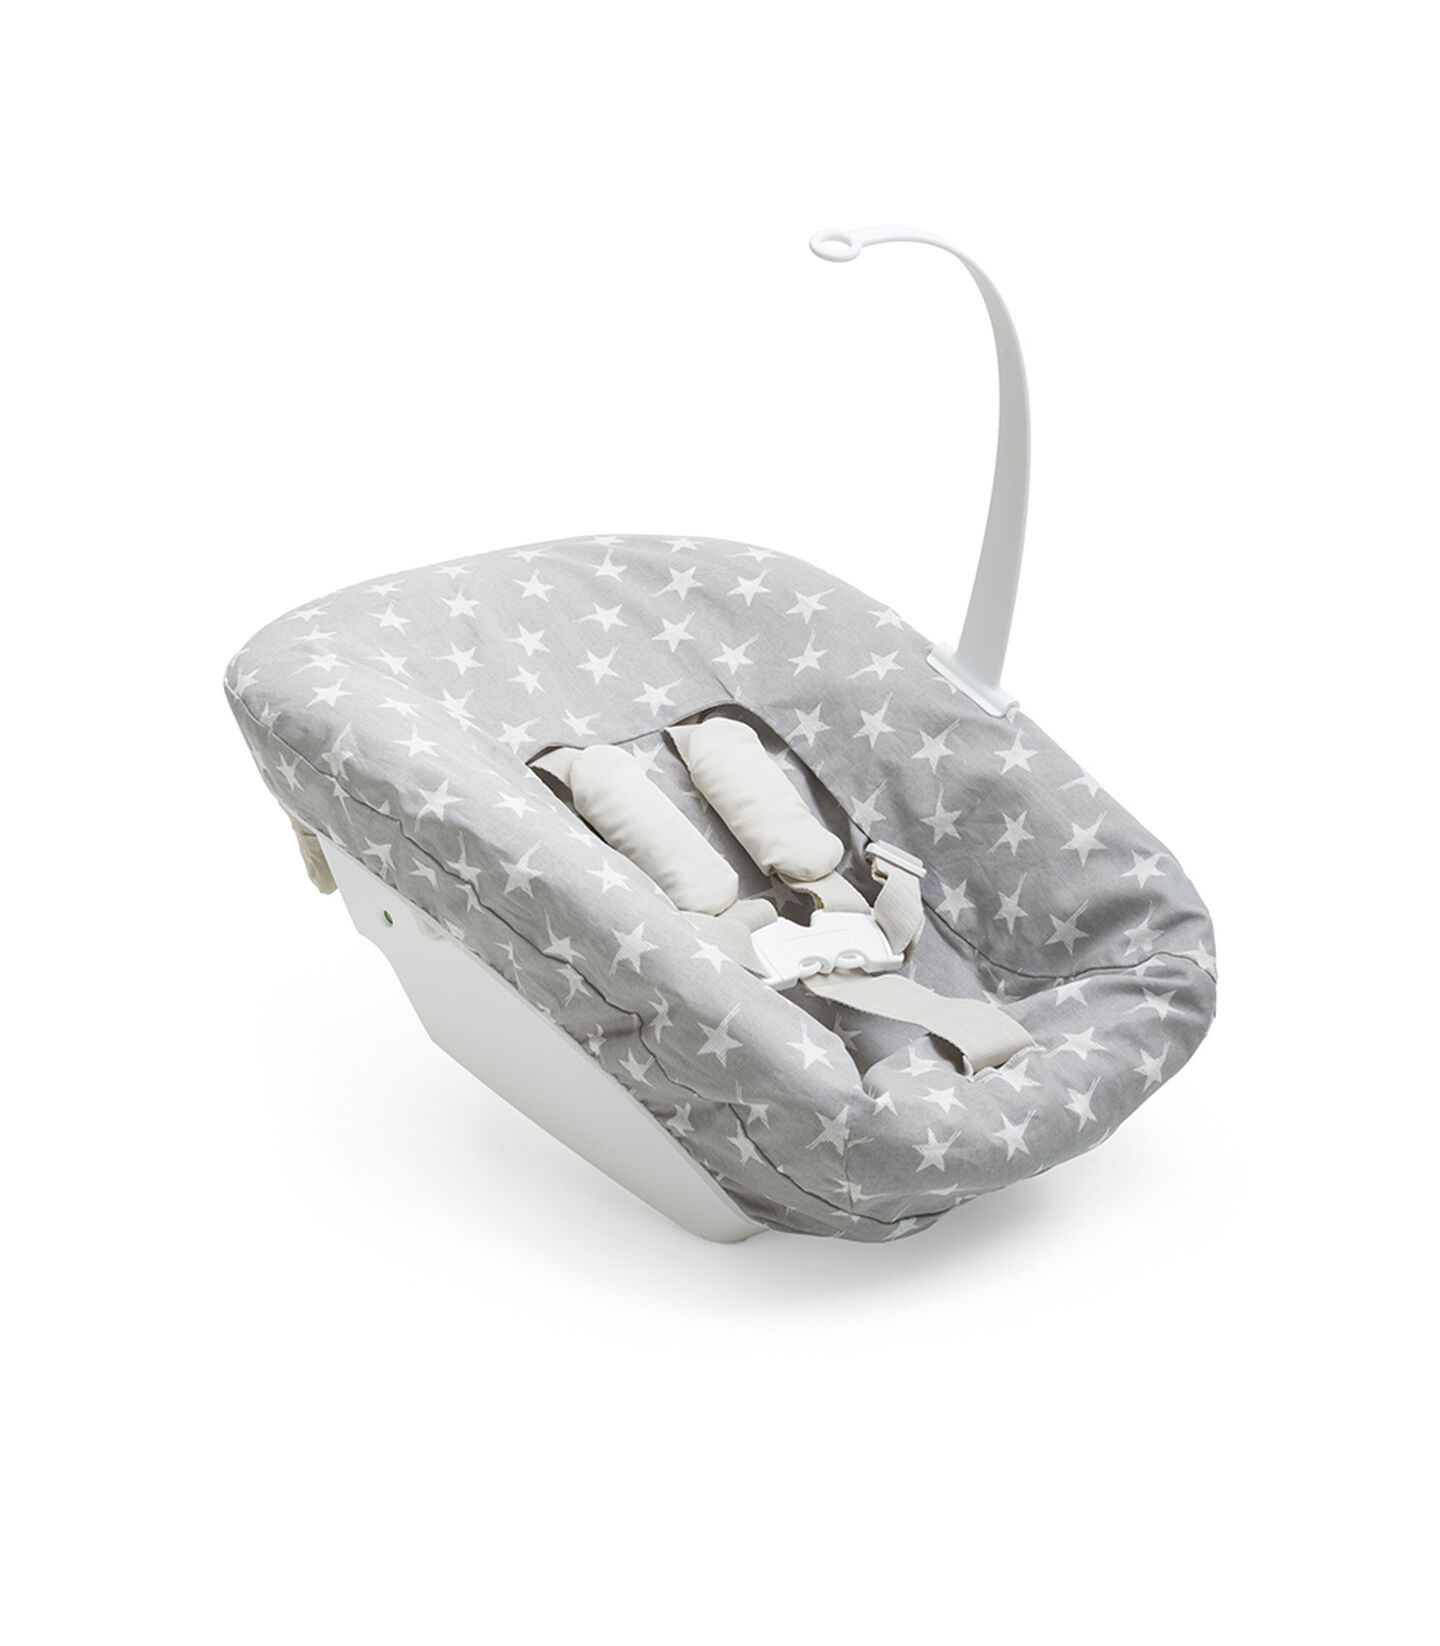 Tripp Trapp® Newborn Set with Pnk Reversed Cover.